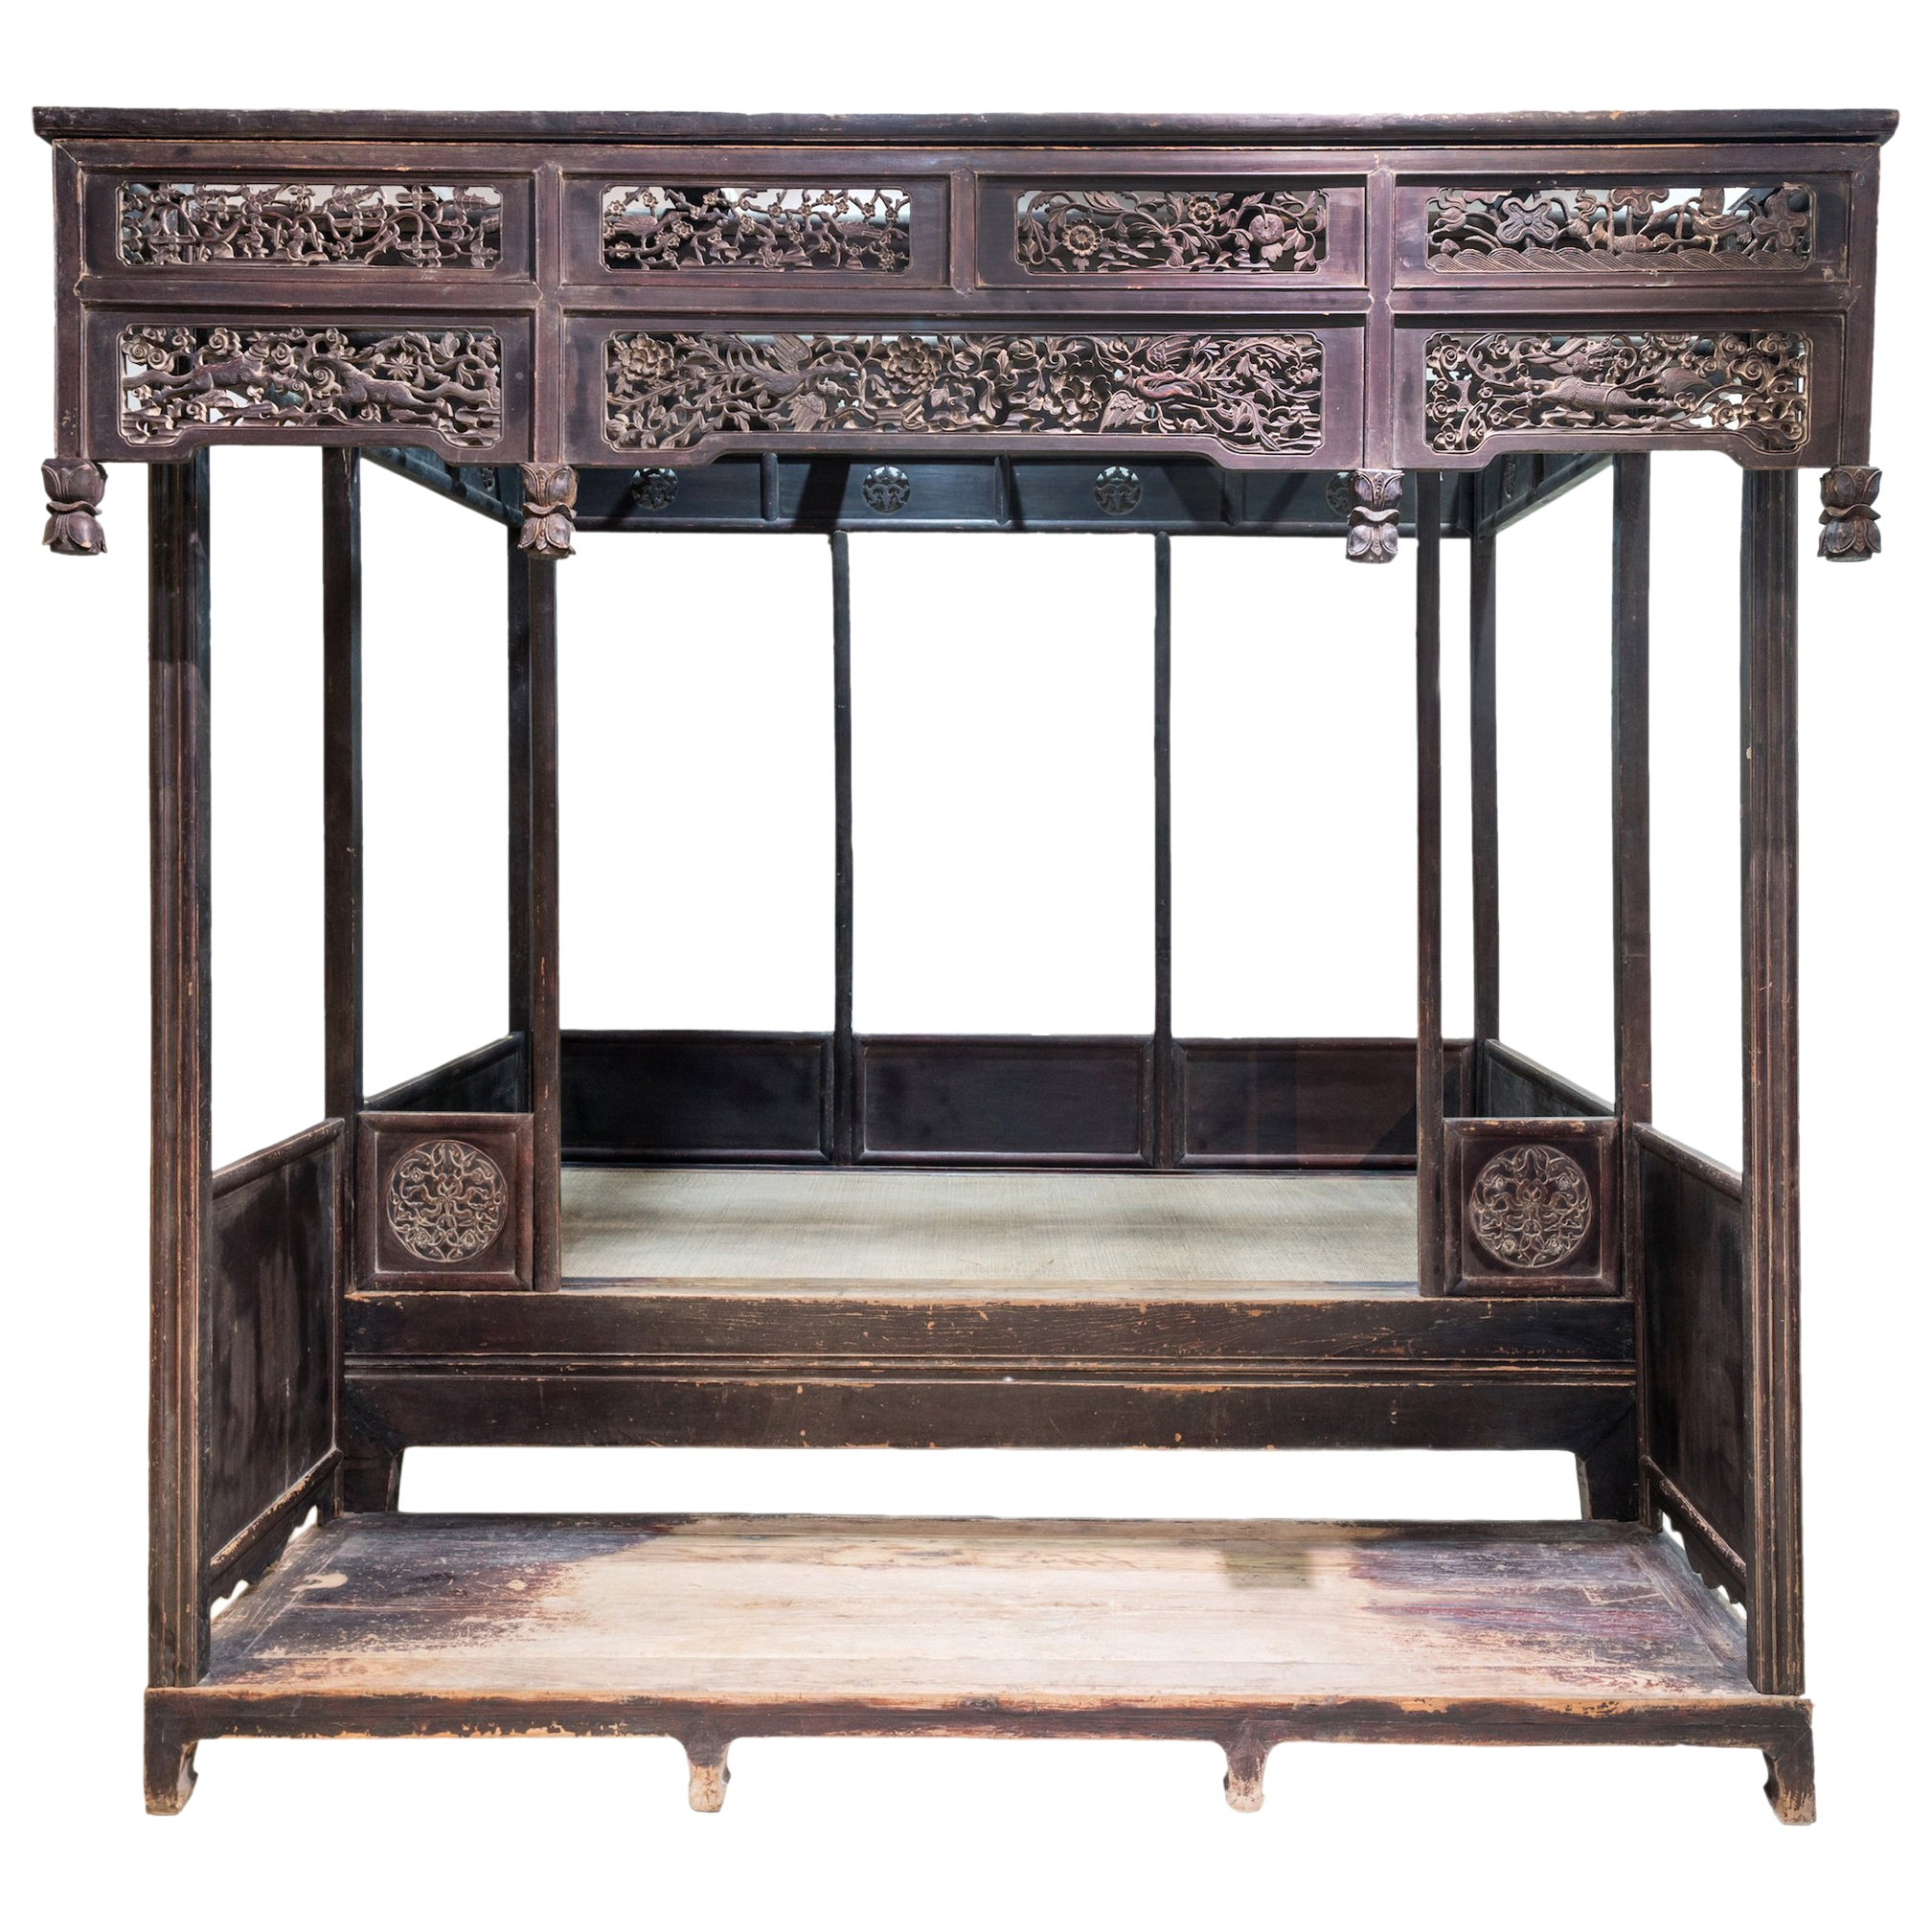 Late 19th Century Canopy Bed from Shanxi, China